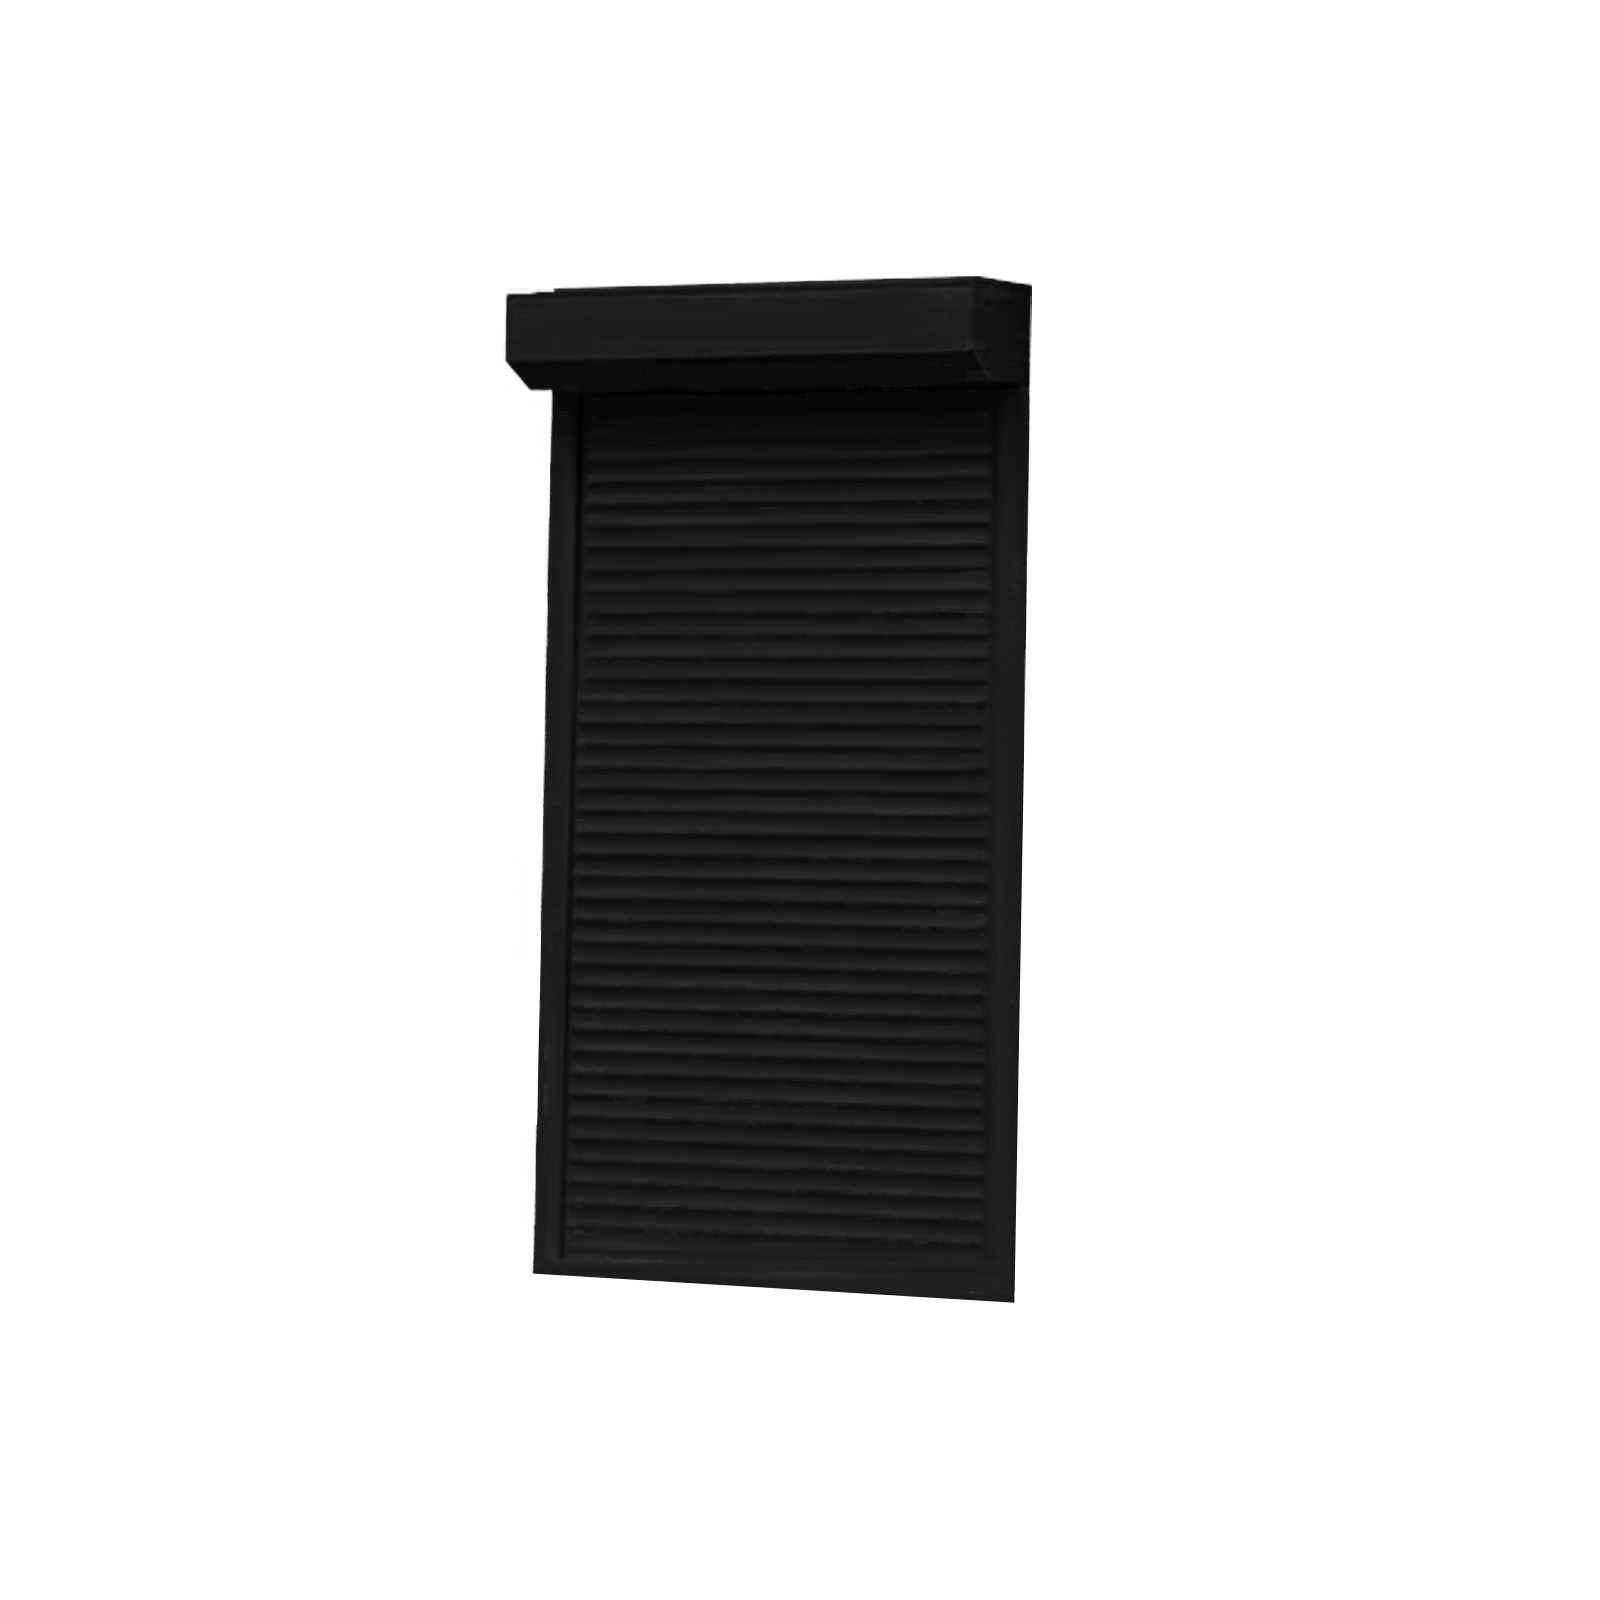 Everton 2001-2200mm H x 1601-1800mm W On-Wall Hardwired Roller Shutter